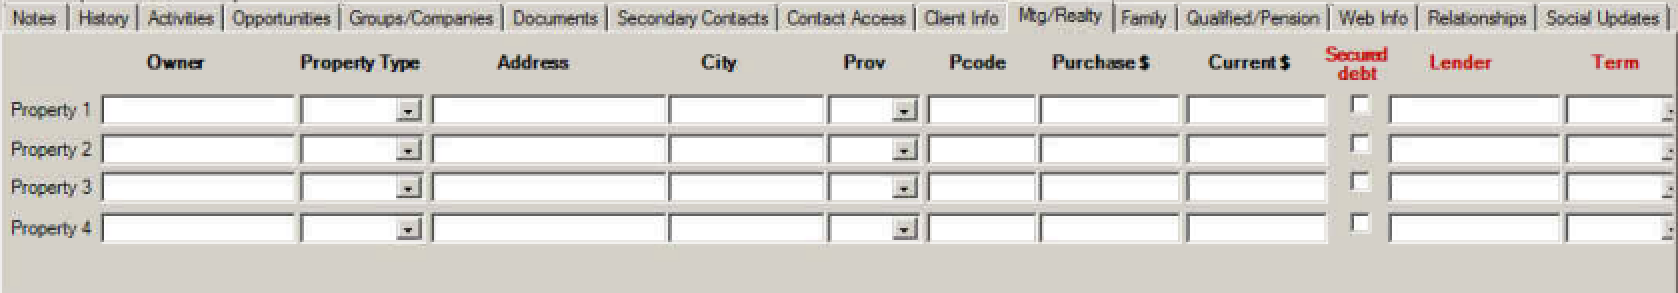 Mortgages in Contact table